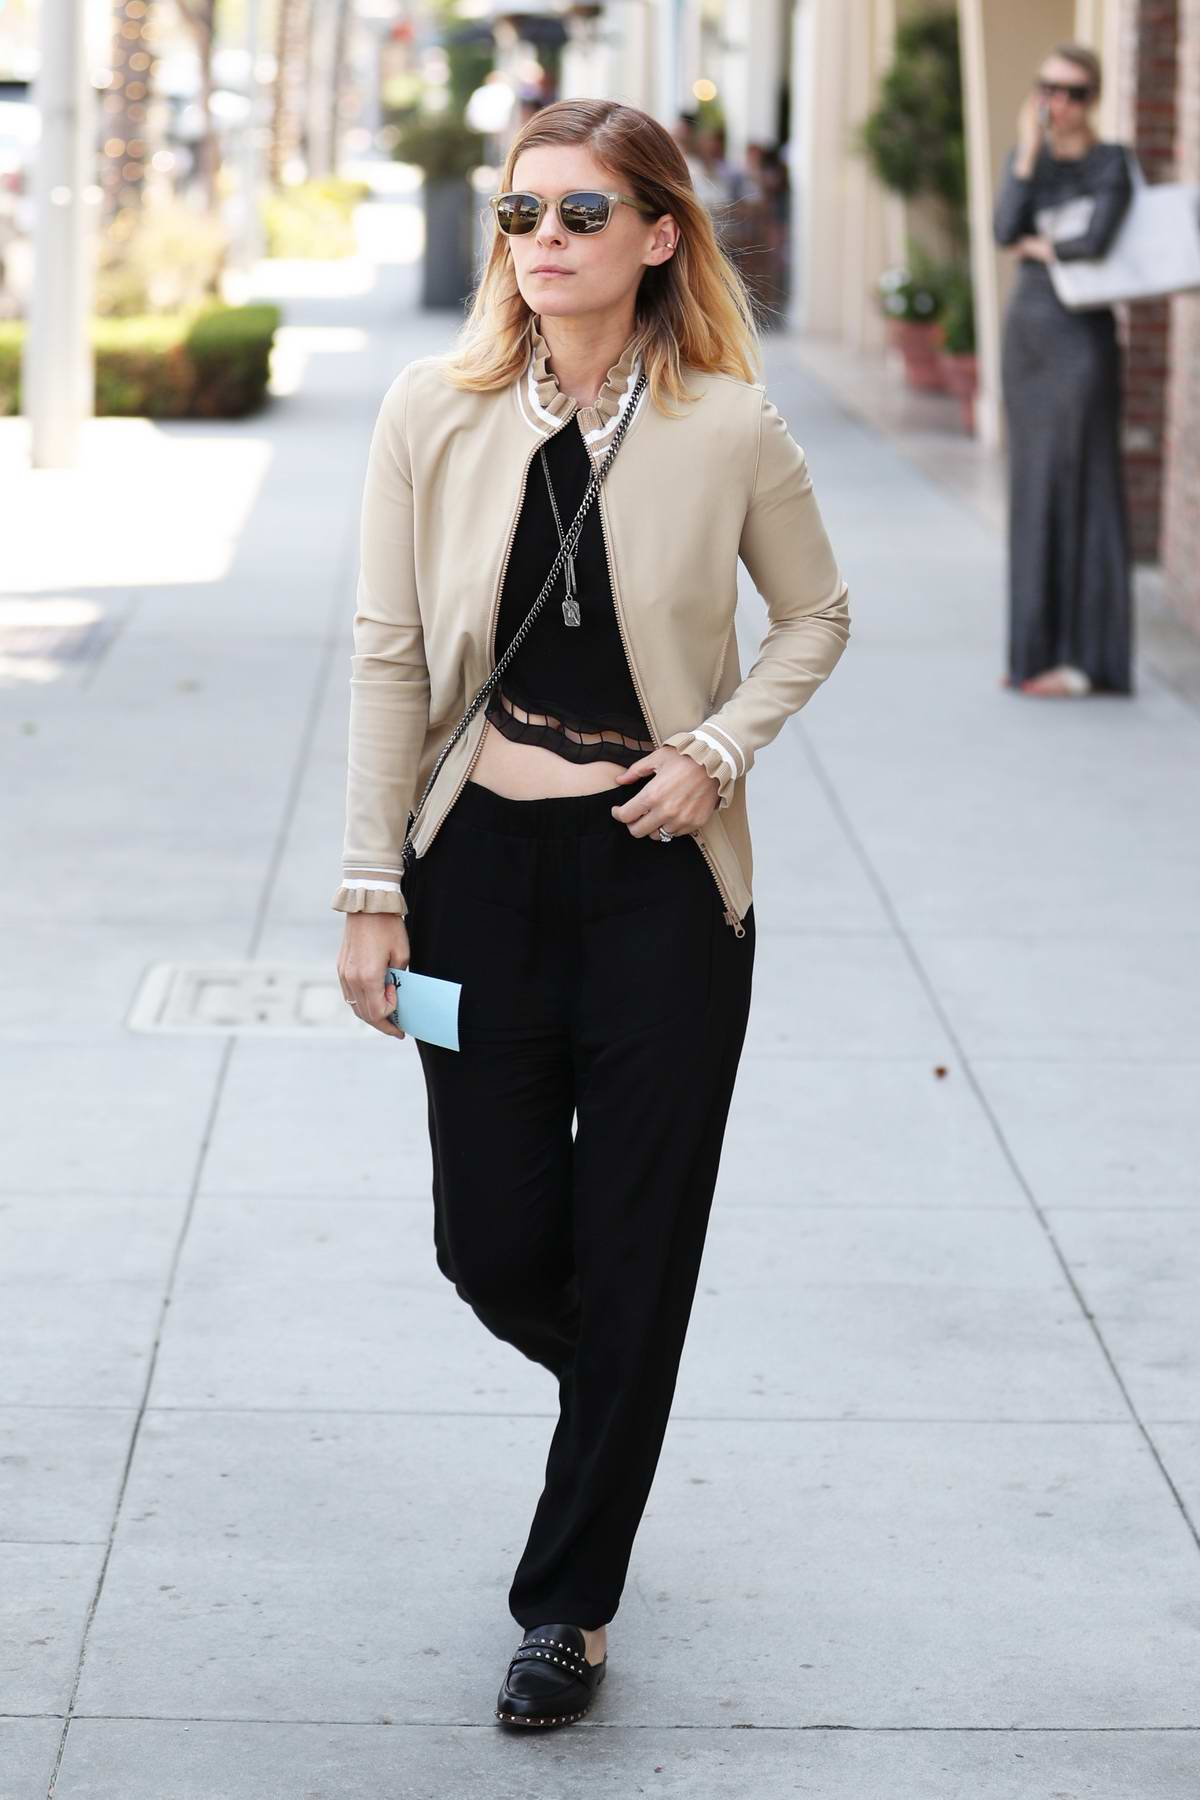 Kate Mara makes a trip to the Salon before running errands in West Hollywood, California